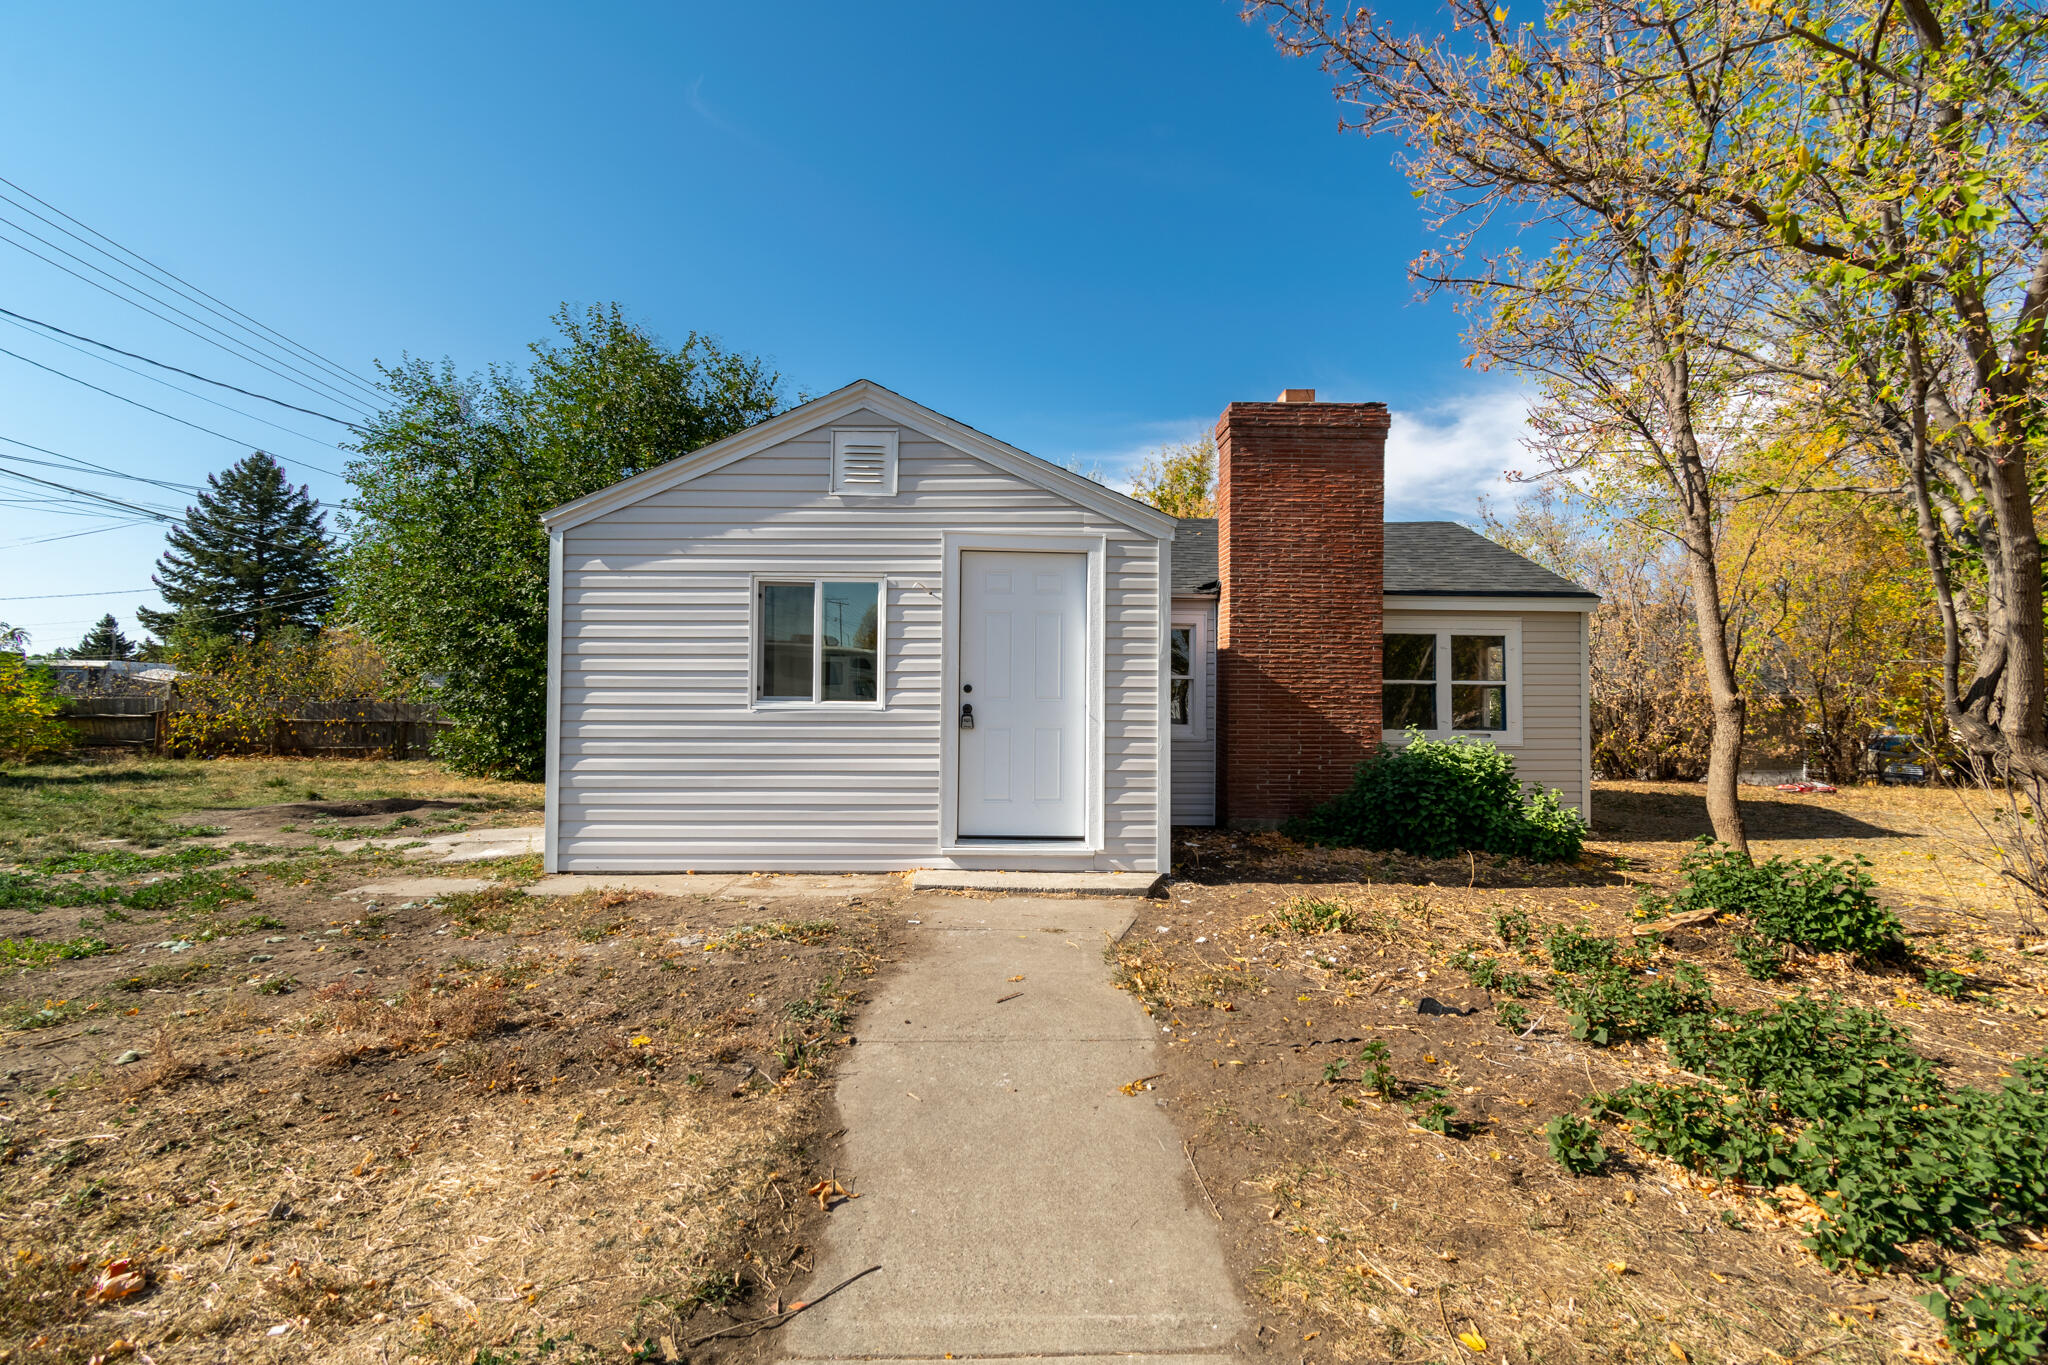 Beautifully remodeled home in a Great Location! This home has one bedroom and one bathroom, and would make an excellent starter home or investment property! Everything in this home has been gone through and fixed up. Custom tile in the kitchen and bathroom, new flooring, central fireplace to supplement the furnace, and even a one-car garage! This home also sits on a full 7500 sq. ft. lot that just has great curb appeal, in a neighborhood where pride of ownership can be seen all around. There really is too many upgrades to list! Call Leo Imperi at 406-750-9503, or your real estate professional.